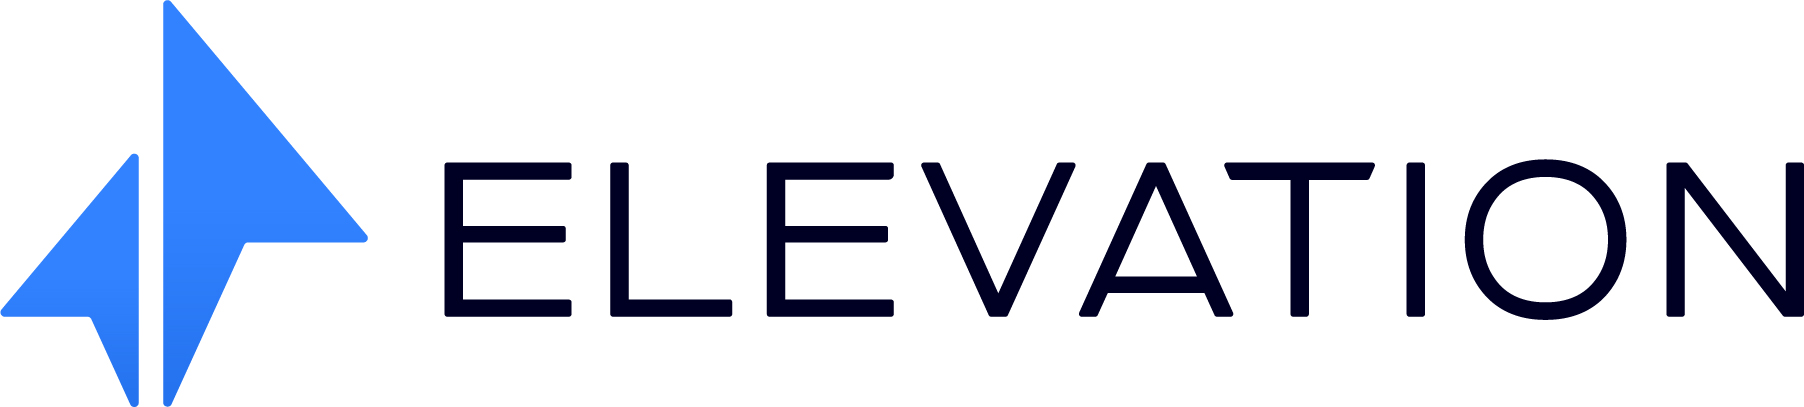 """Elevation Capital on Twitter: """"SAIF Partners is now Elevation Capital. Same  spirit, New name. Committed to founders who are creating a better tomorrow.  From Day One. https://t.co/9cdTguT41X https://t.co/ep5edRZD1a"""" / Twitter"""